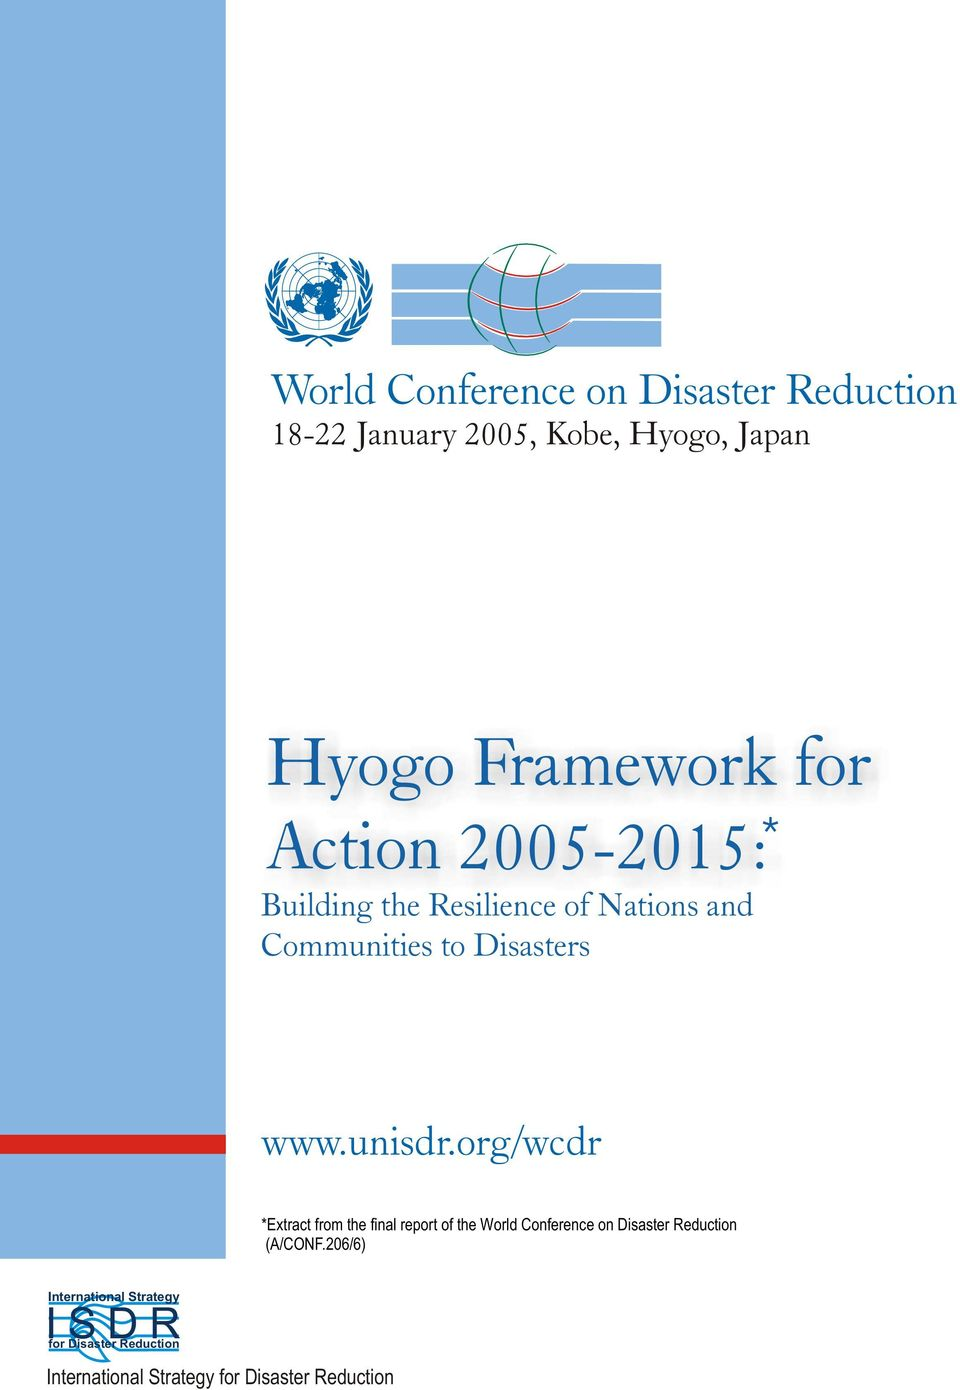 org/wcdr *Extract from the final report of the World Conference on Disaster Reduction (A/CONF.